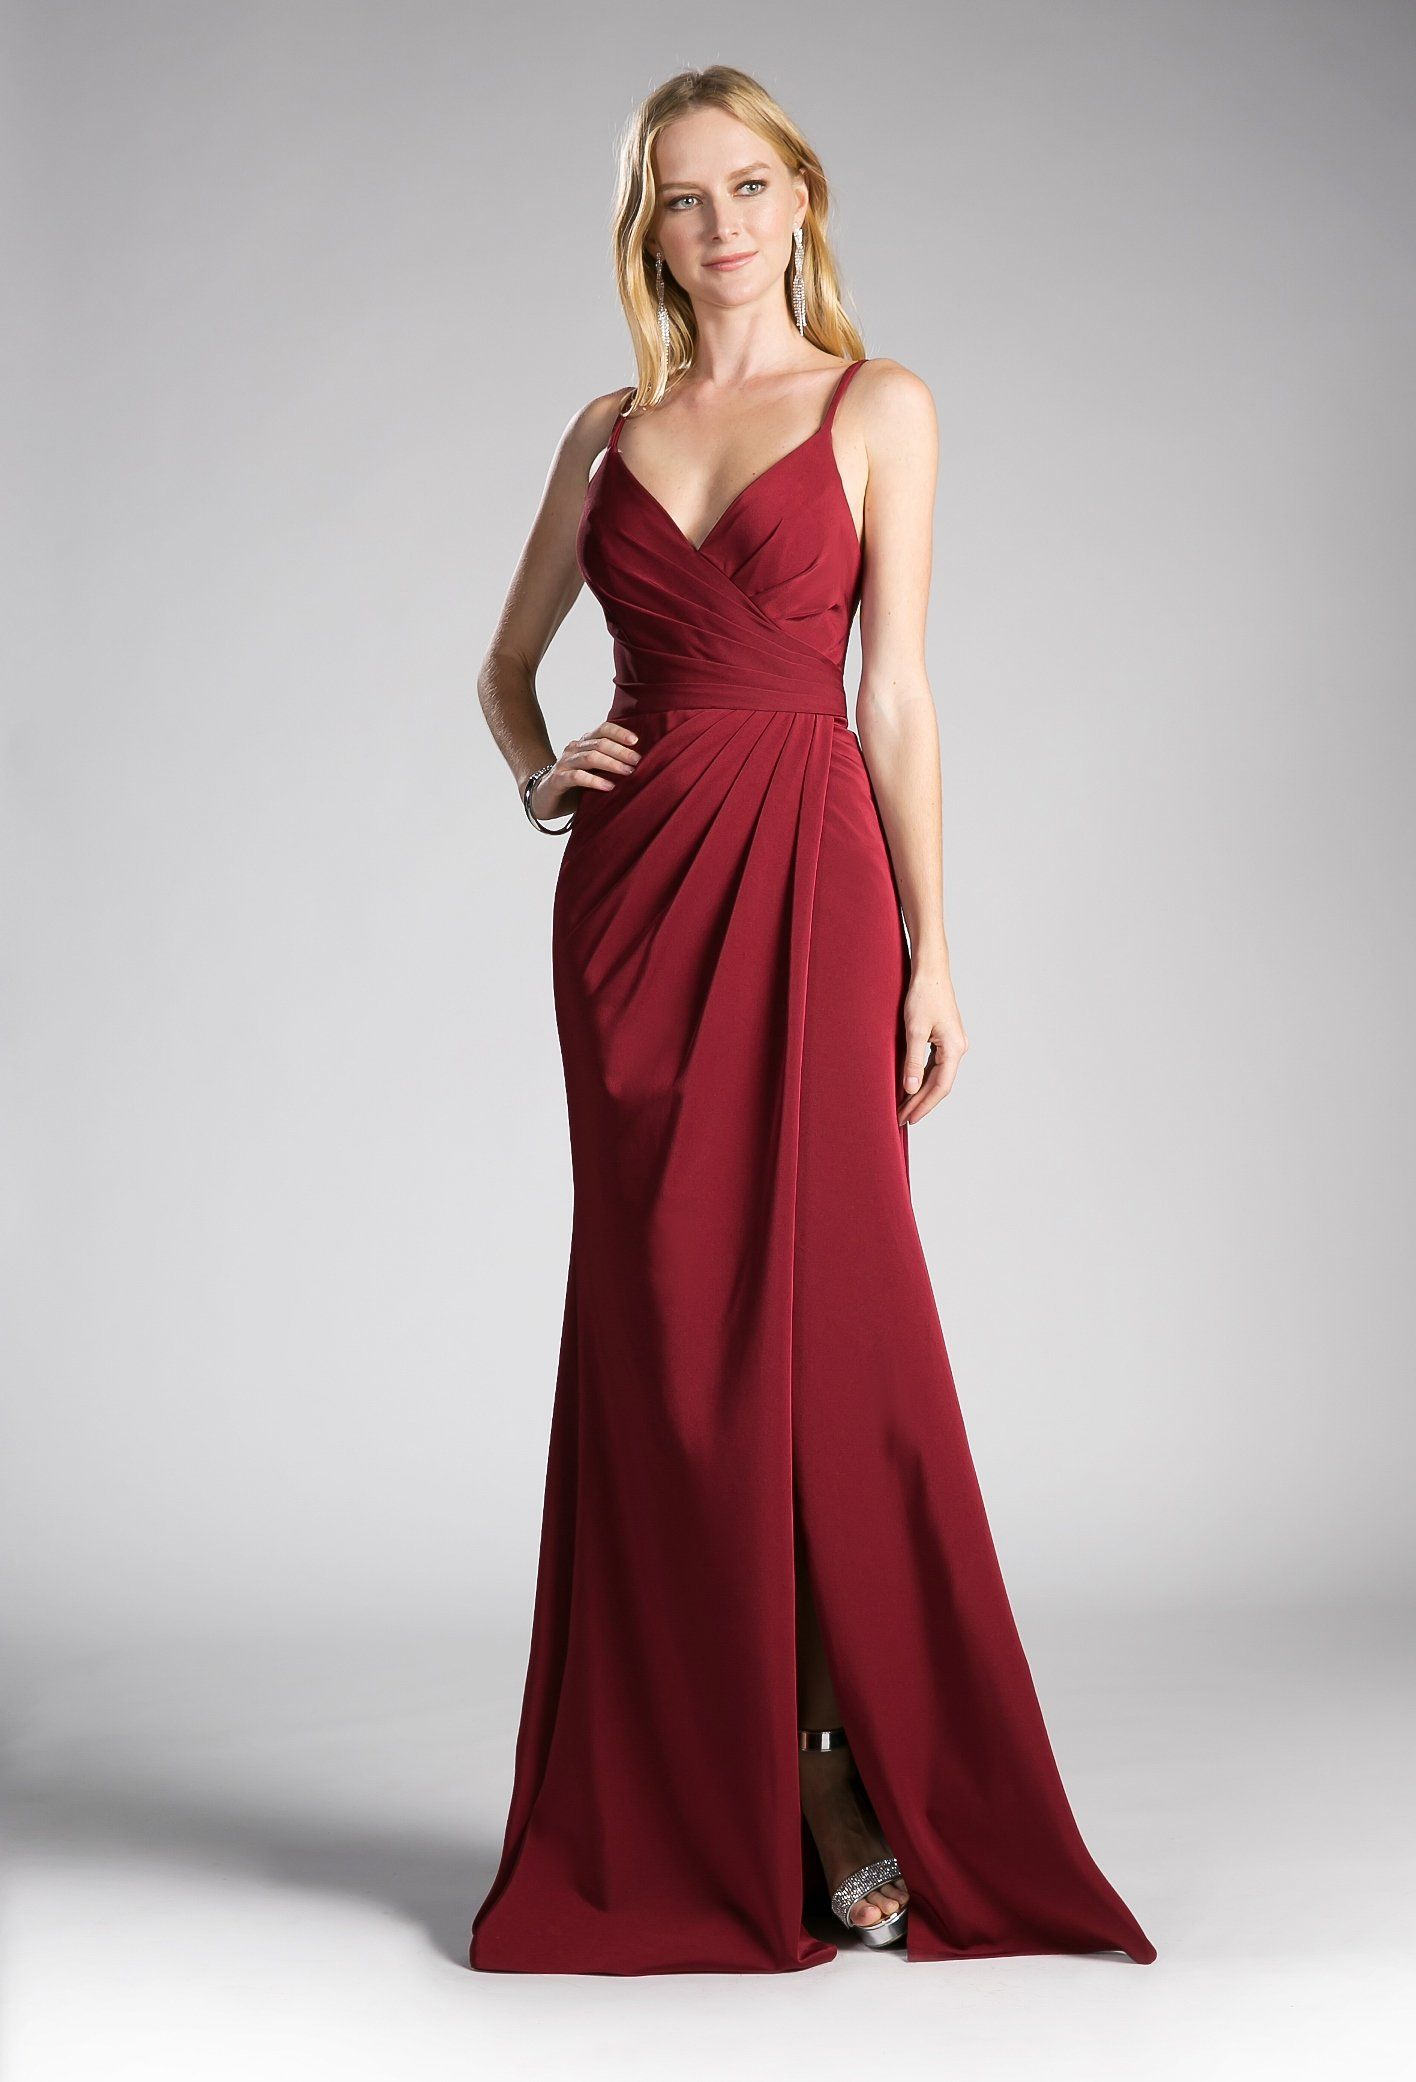 Pleated Long VNeck Dress with Slit by Cinderella Divine KC in